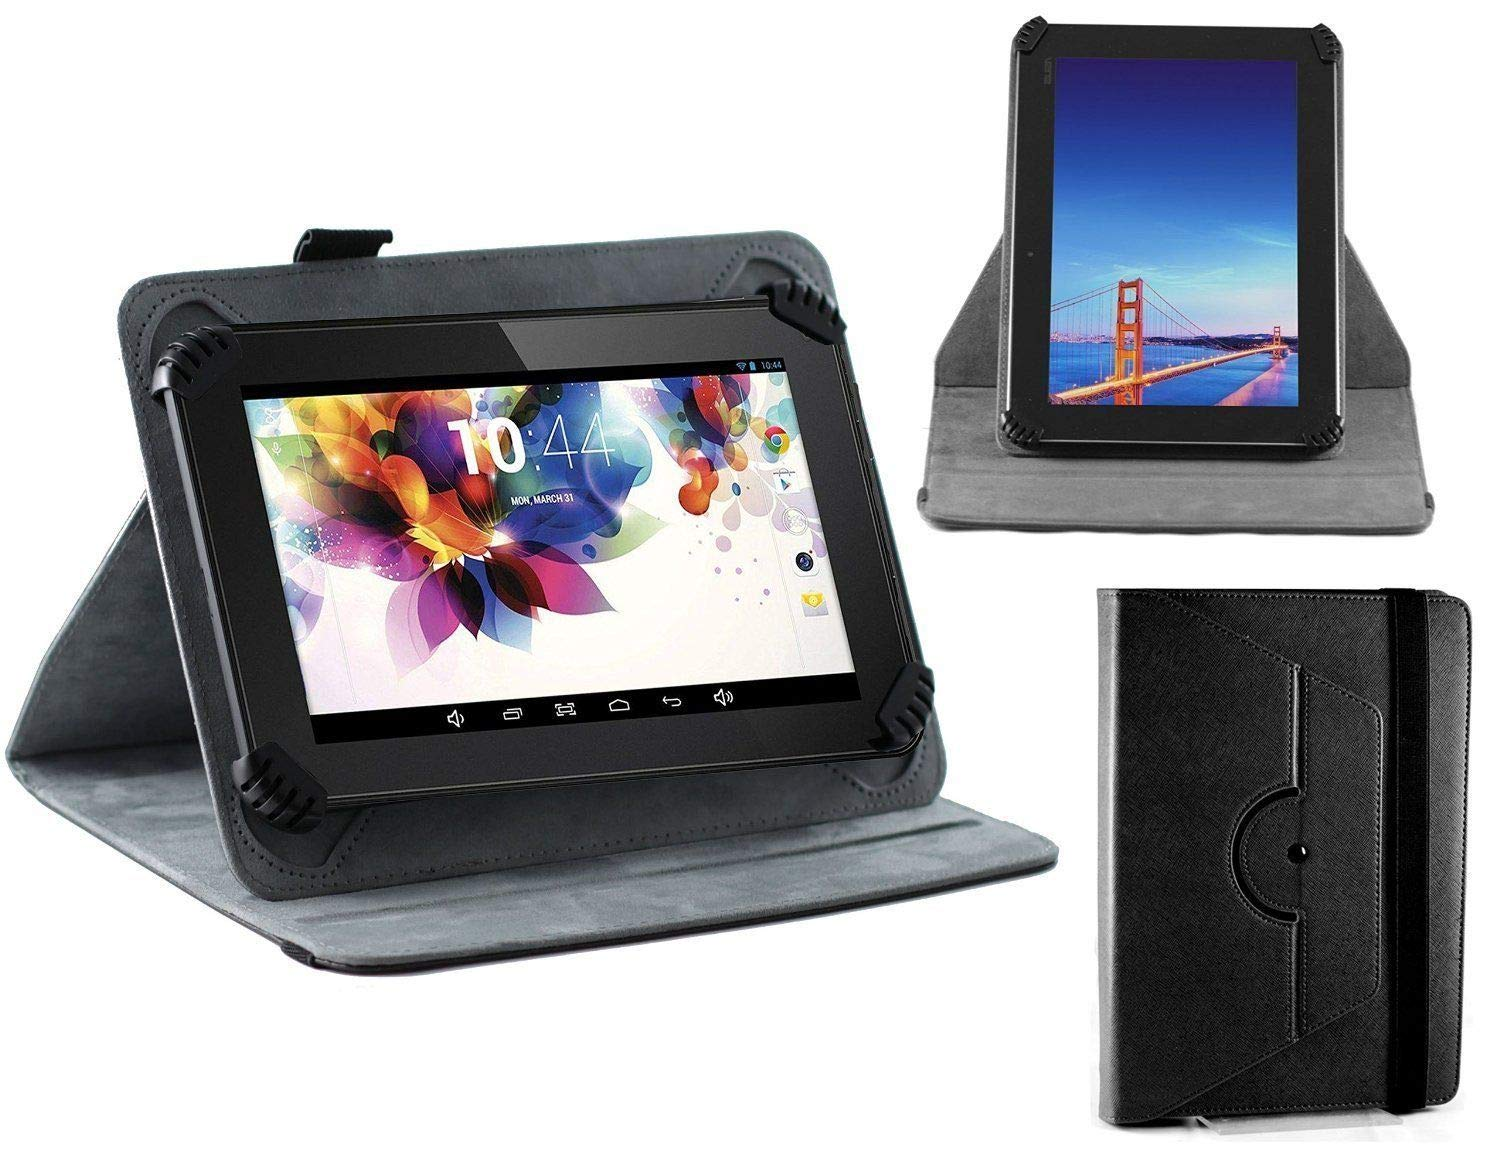 Navitech Black Leather Case Cover with 360 Rotational Stand & Atlas Stylus Compatible with The LG G Pad F 8.0 | LG G Pad V495 | LG G Pad X 8.0 V520 | LG GPad X2 8.0 Plus V530 | LG G Pad V400